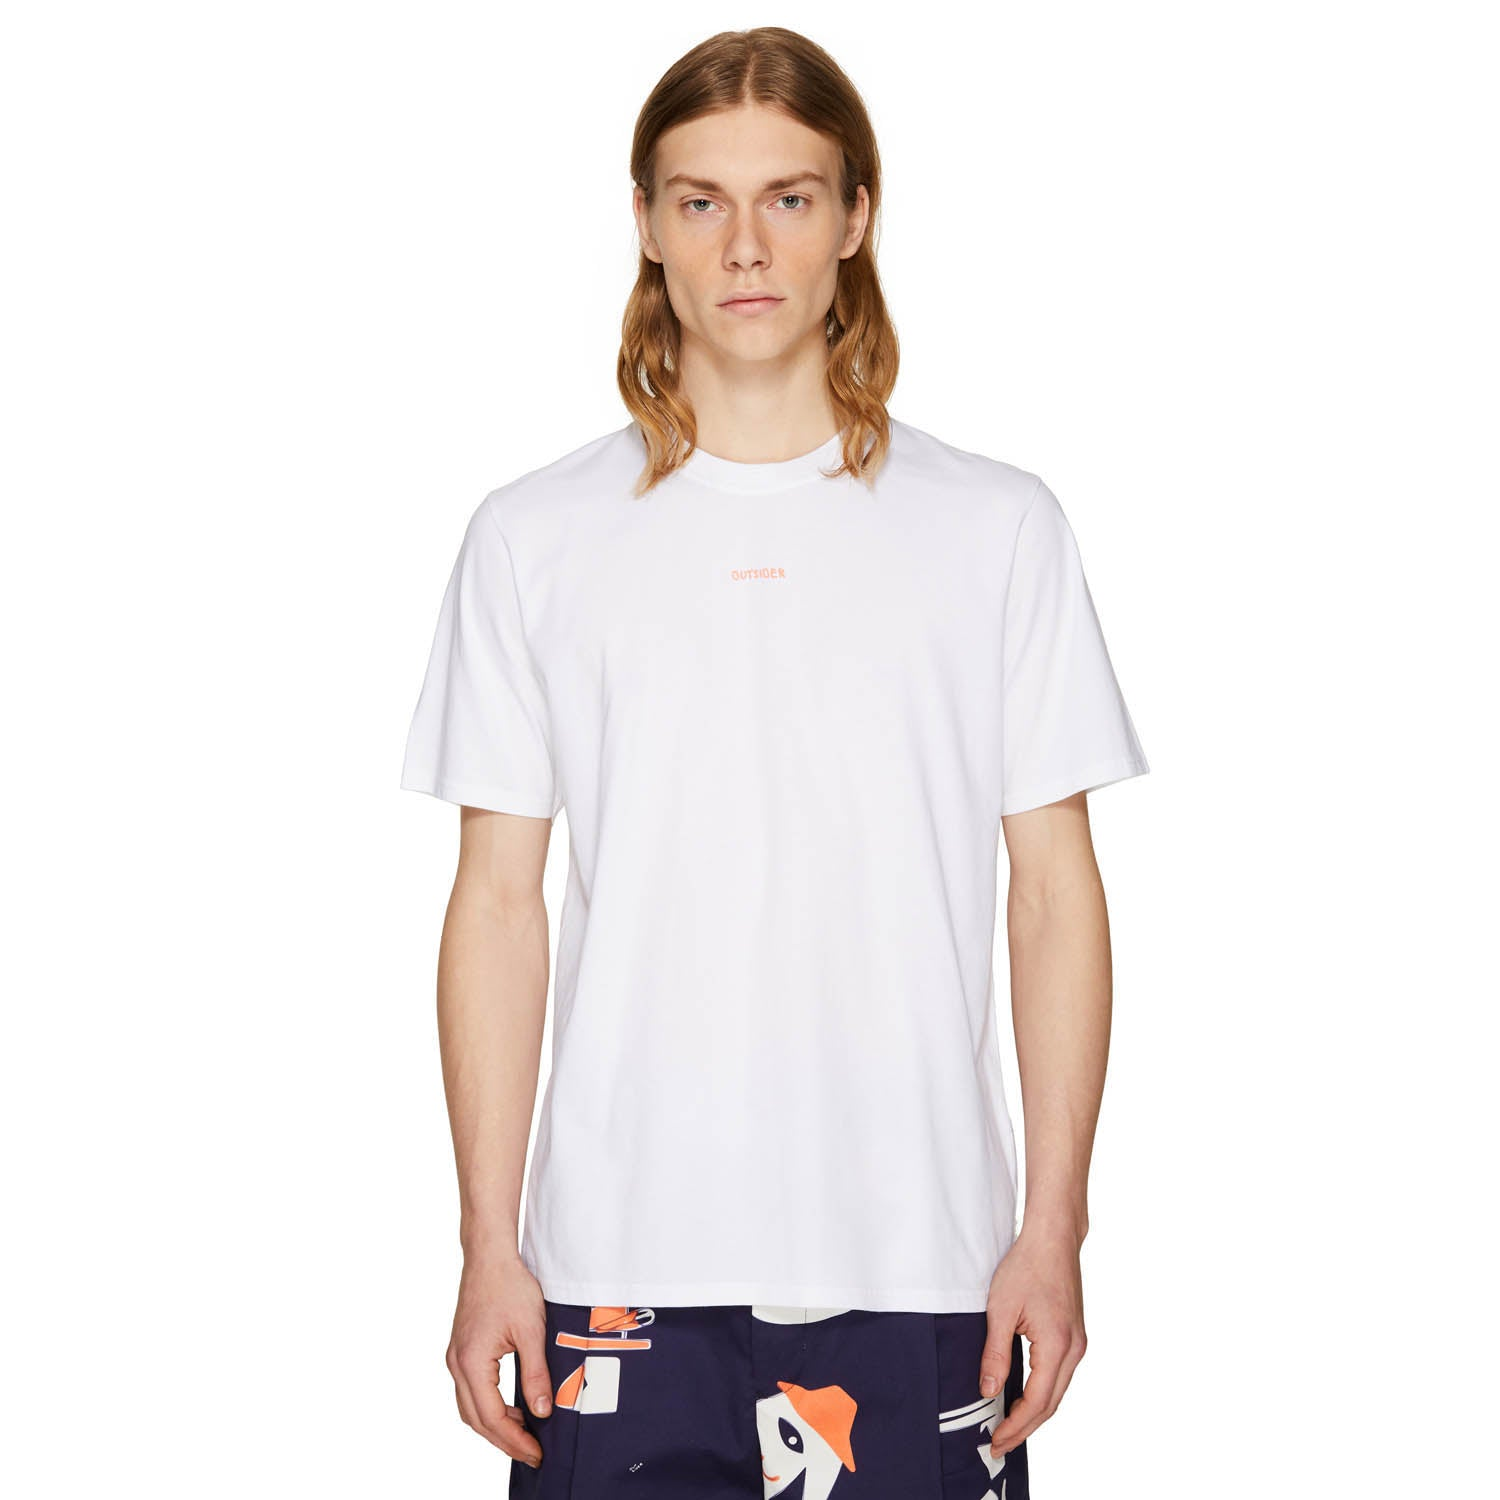 OUTSIDER T-SHIRT OFF-WHITE